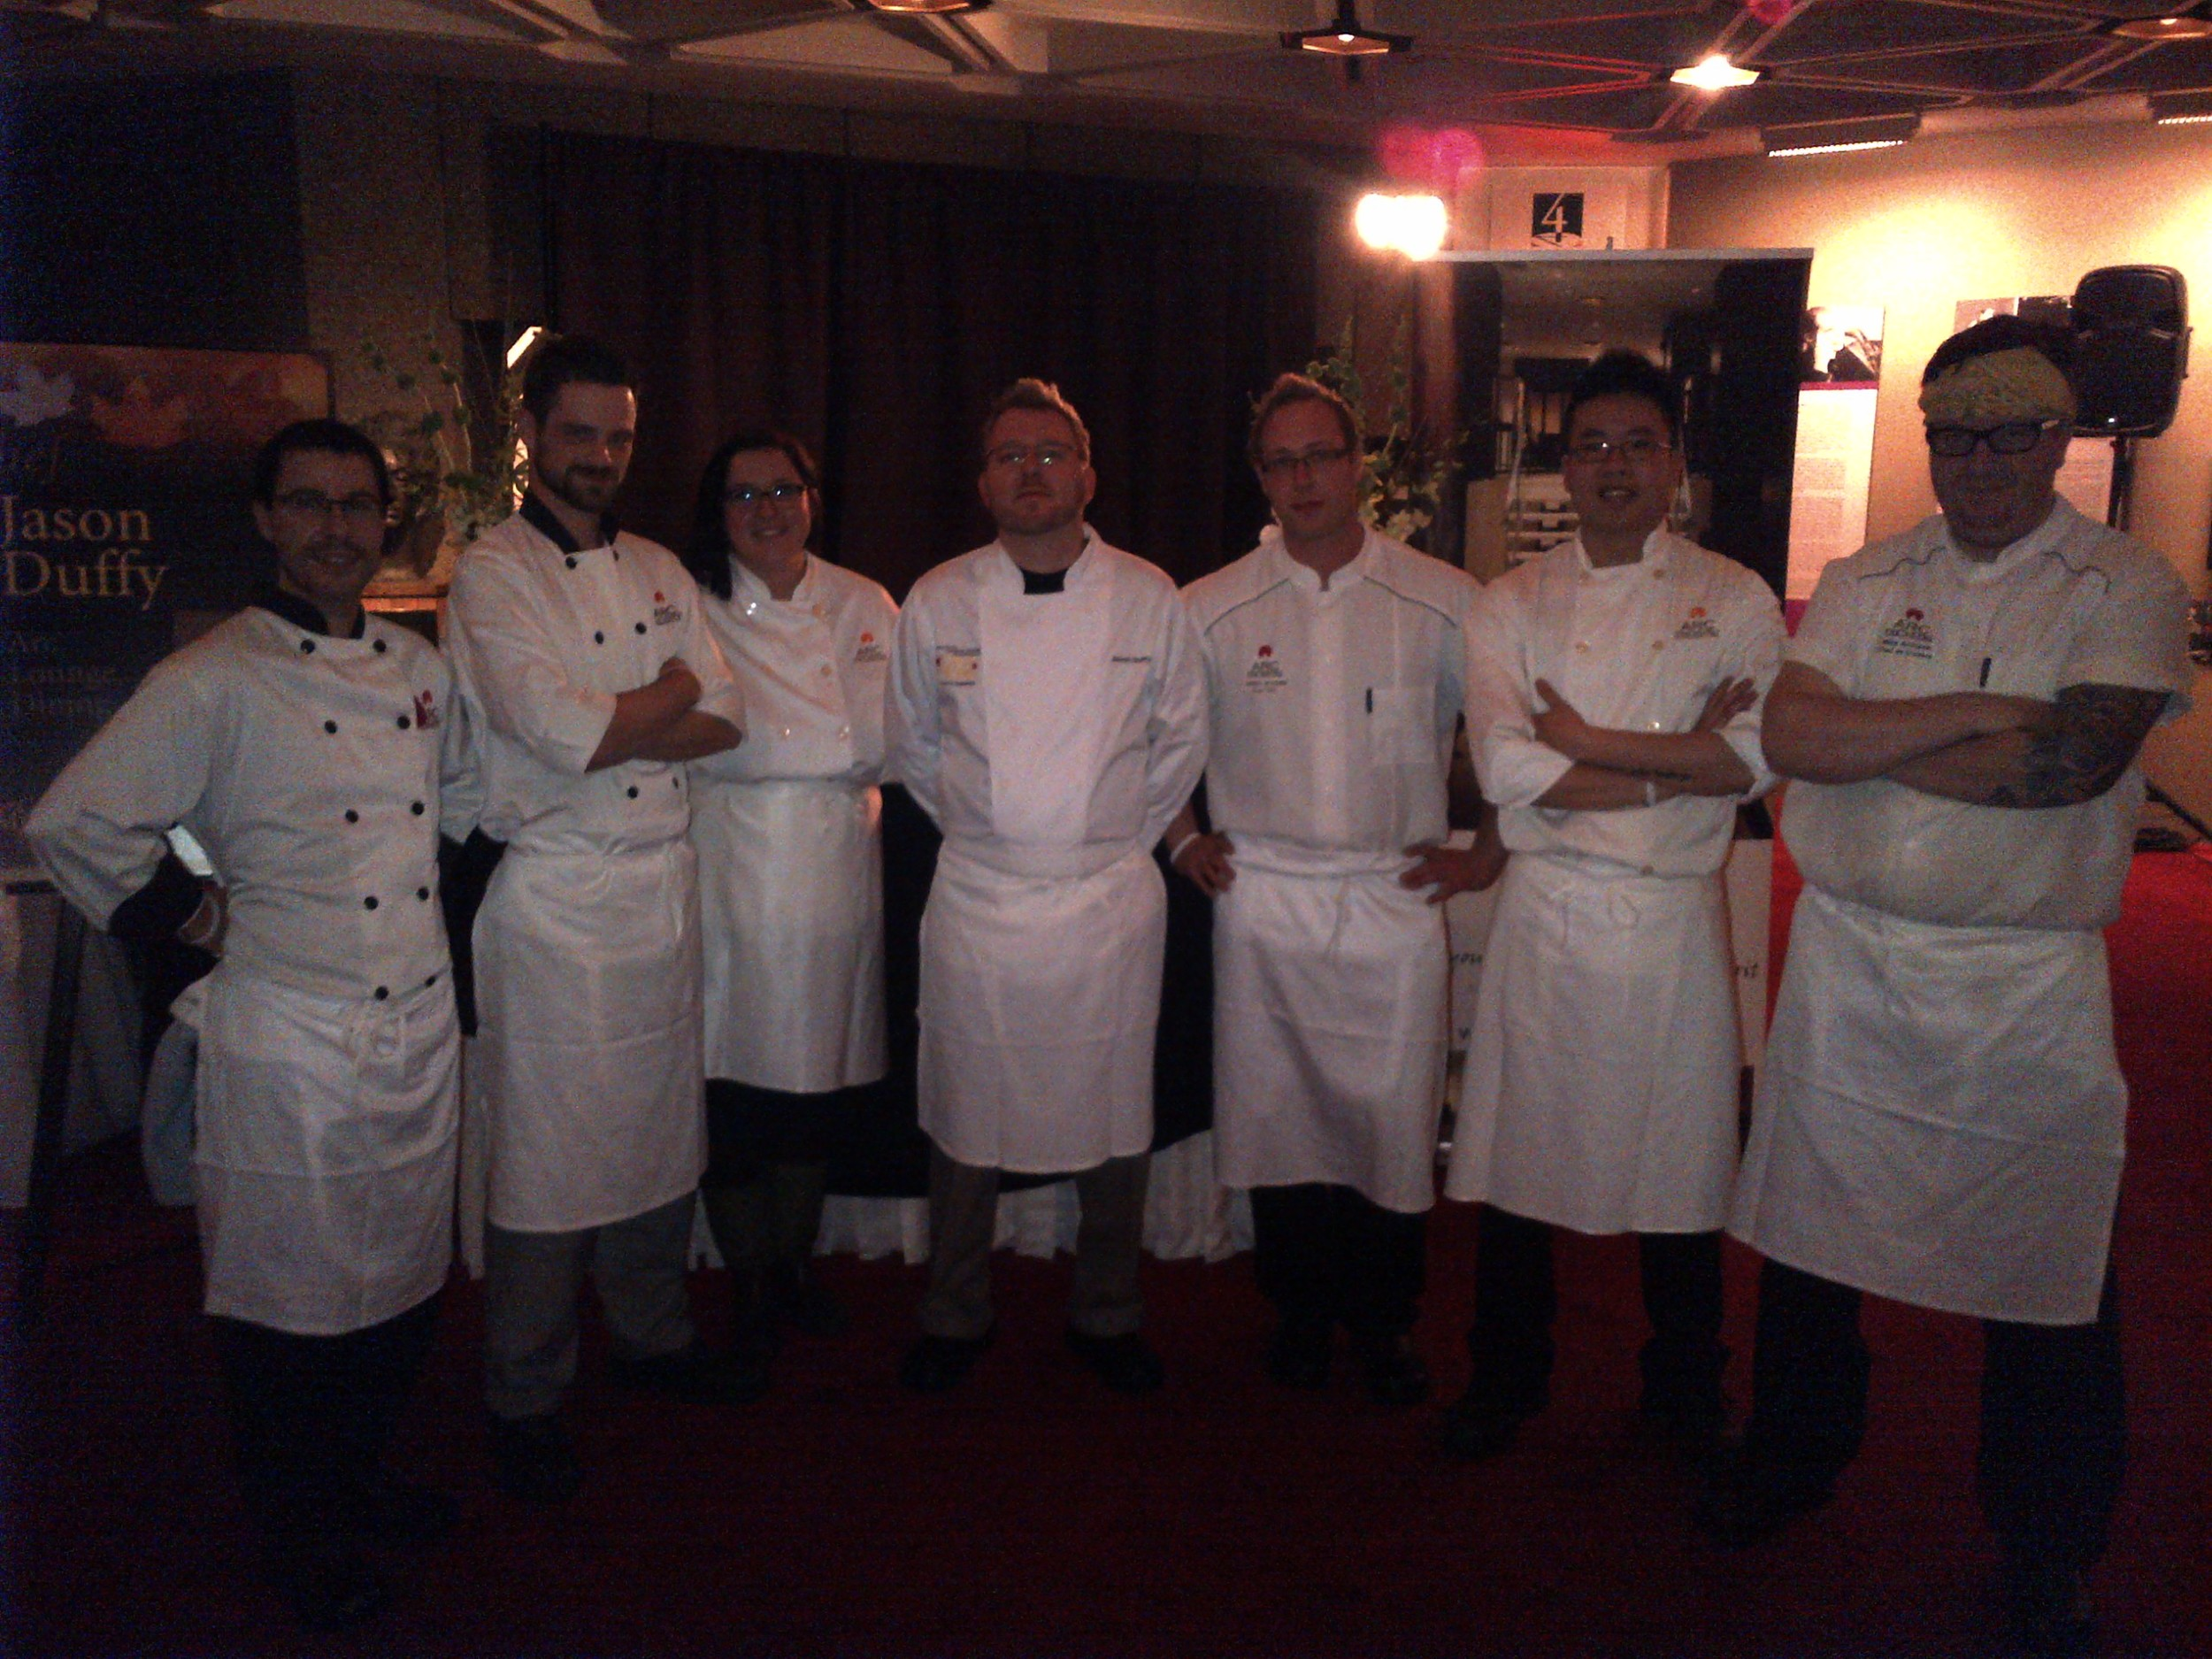 Jason Duffy's culinary team from ARC the Hotel